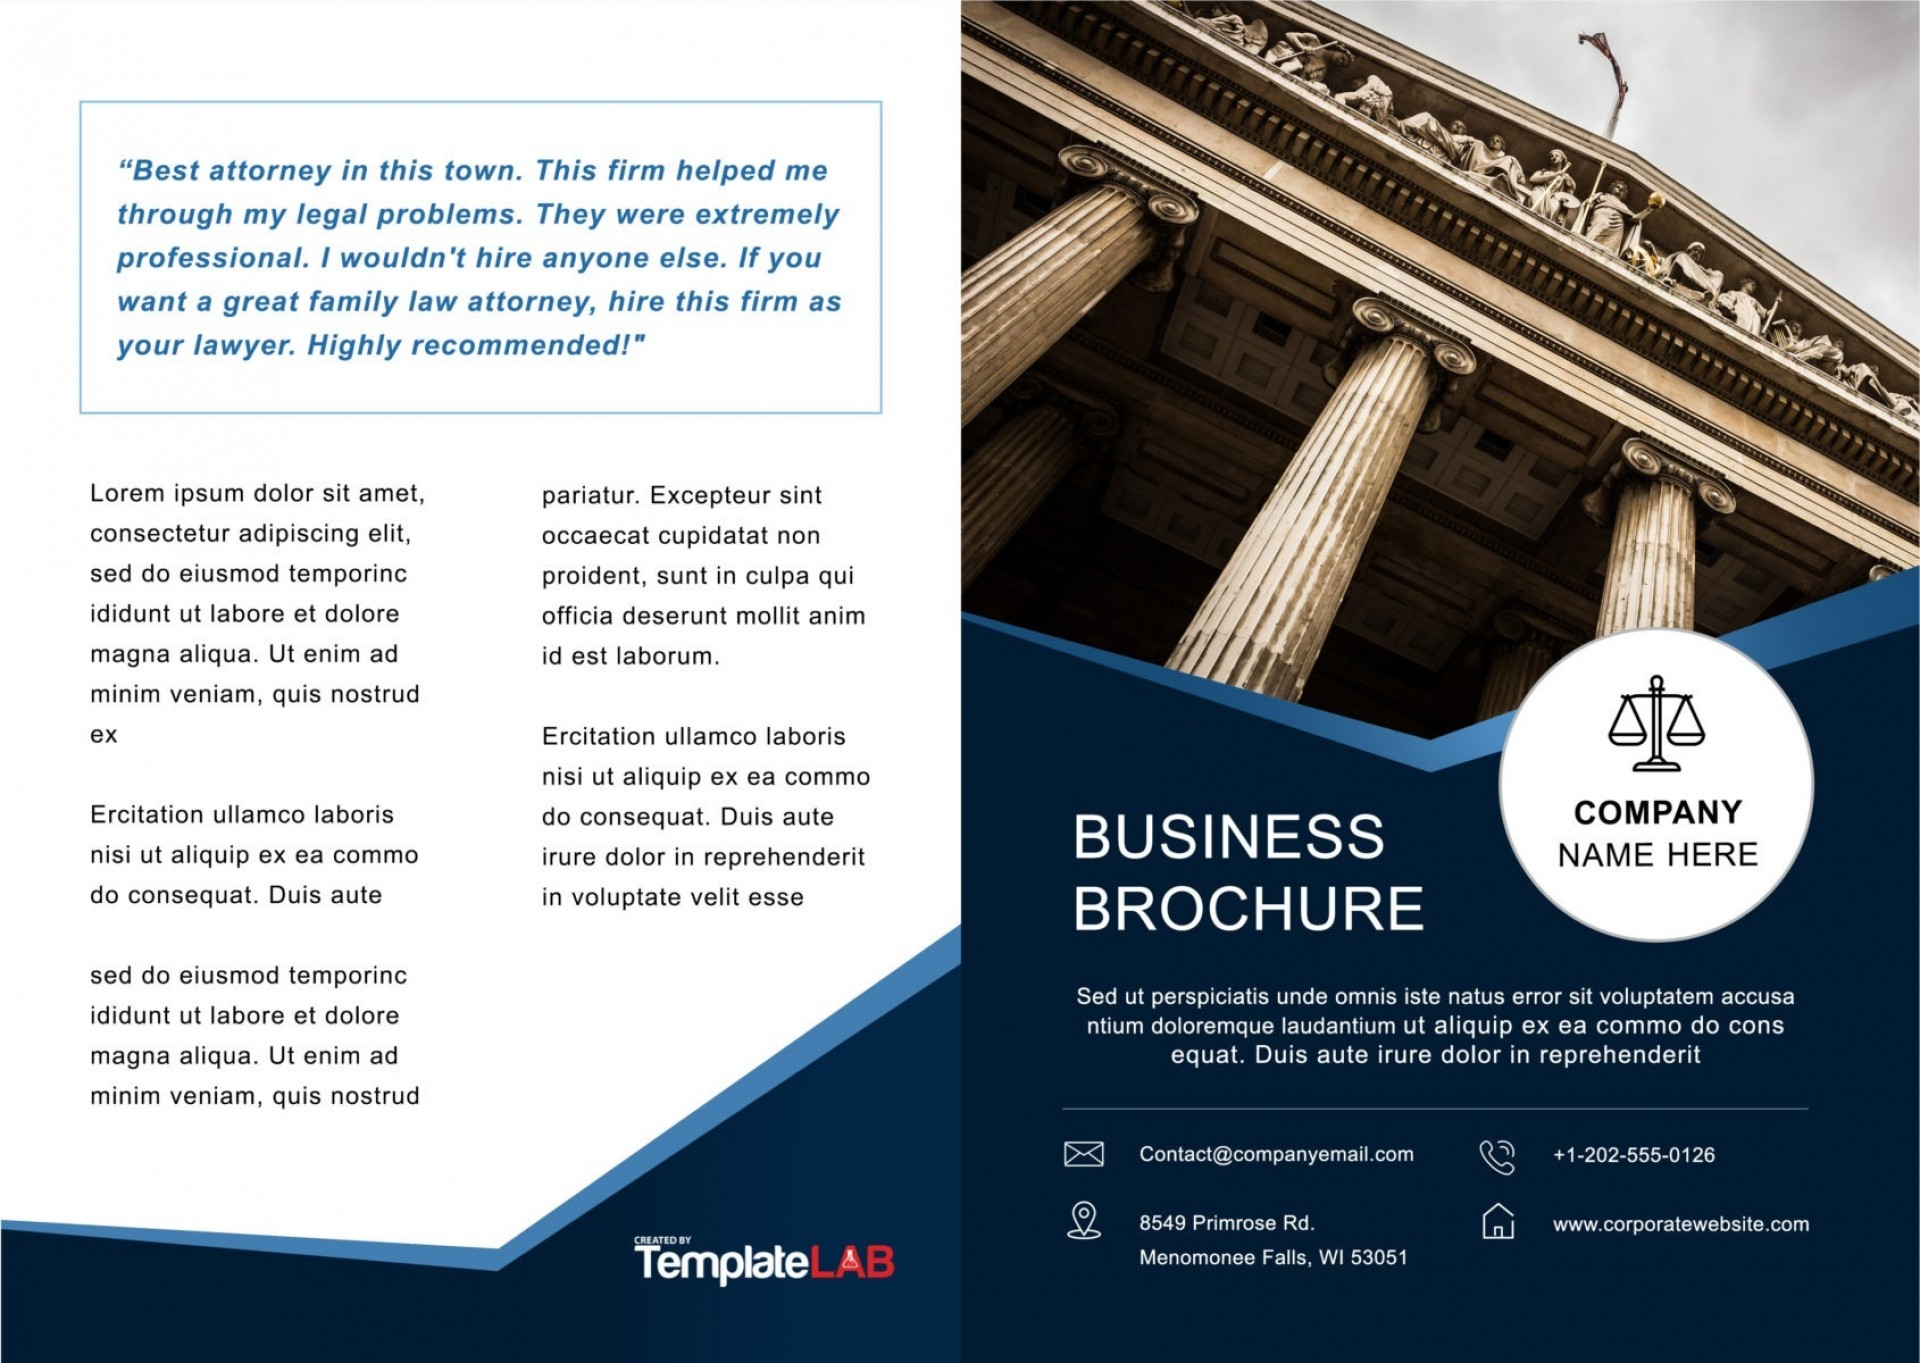 003 Impressive Free Online Brochure Template Highest Clarity  Templates Download Microsoft Word Real Estate1920